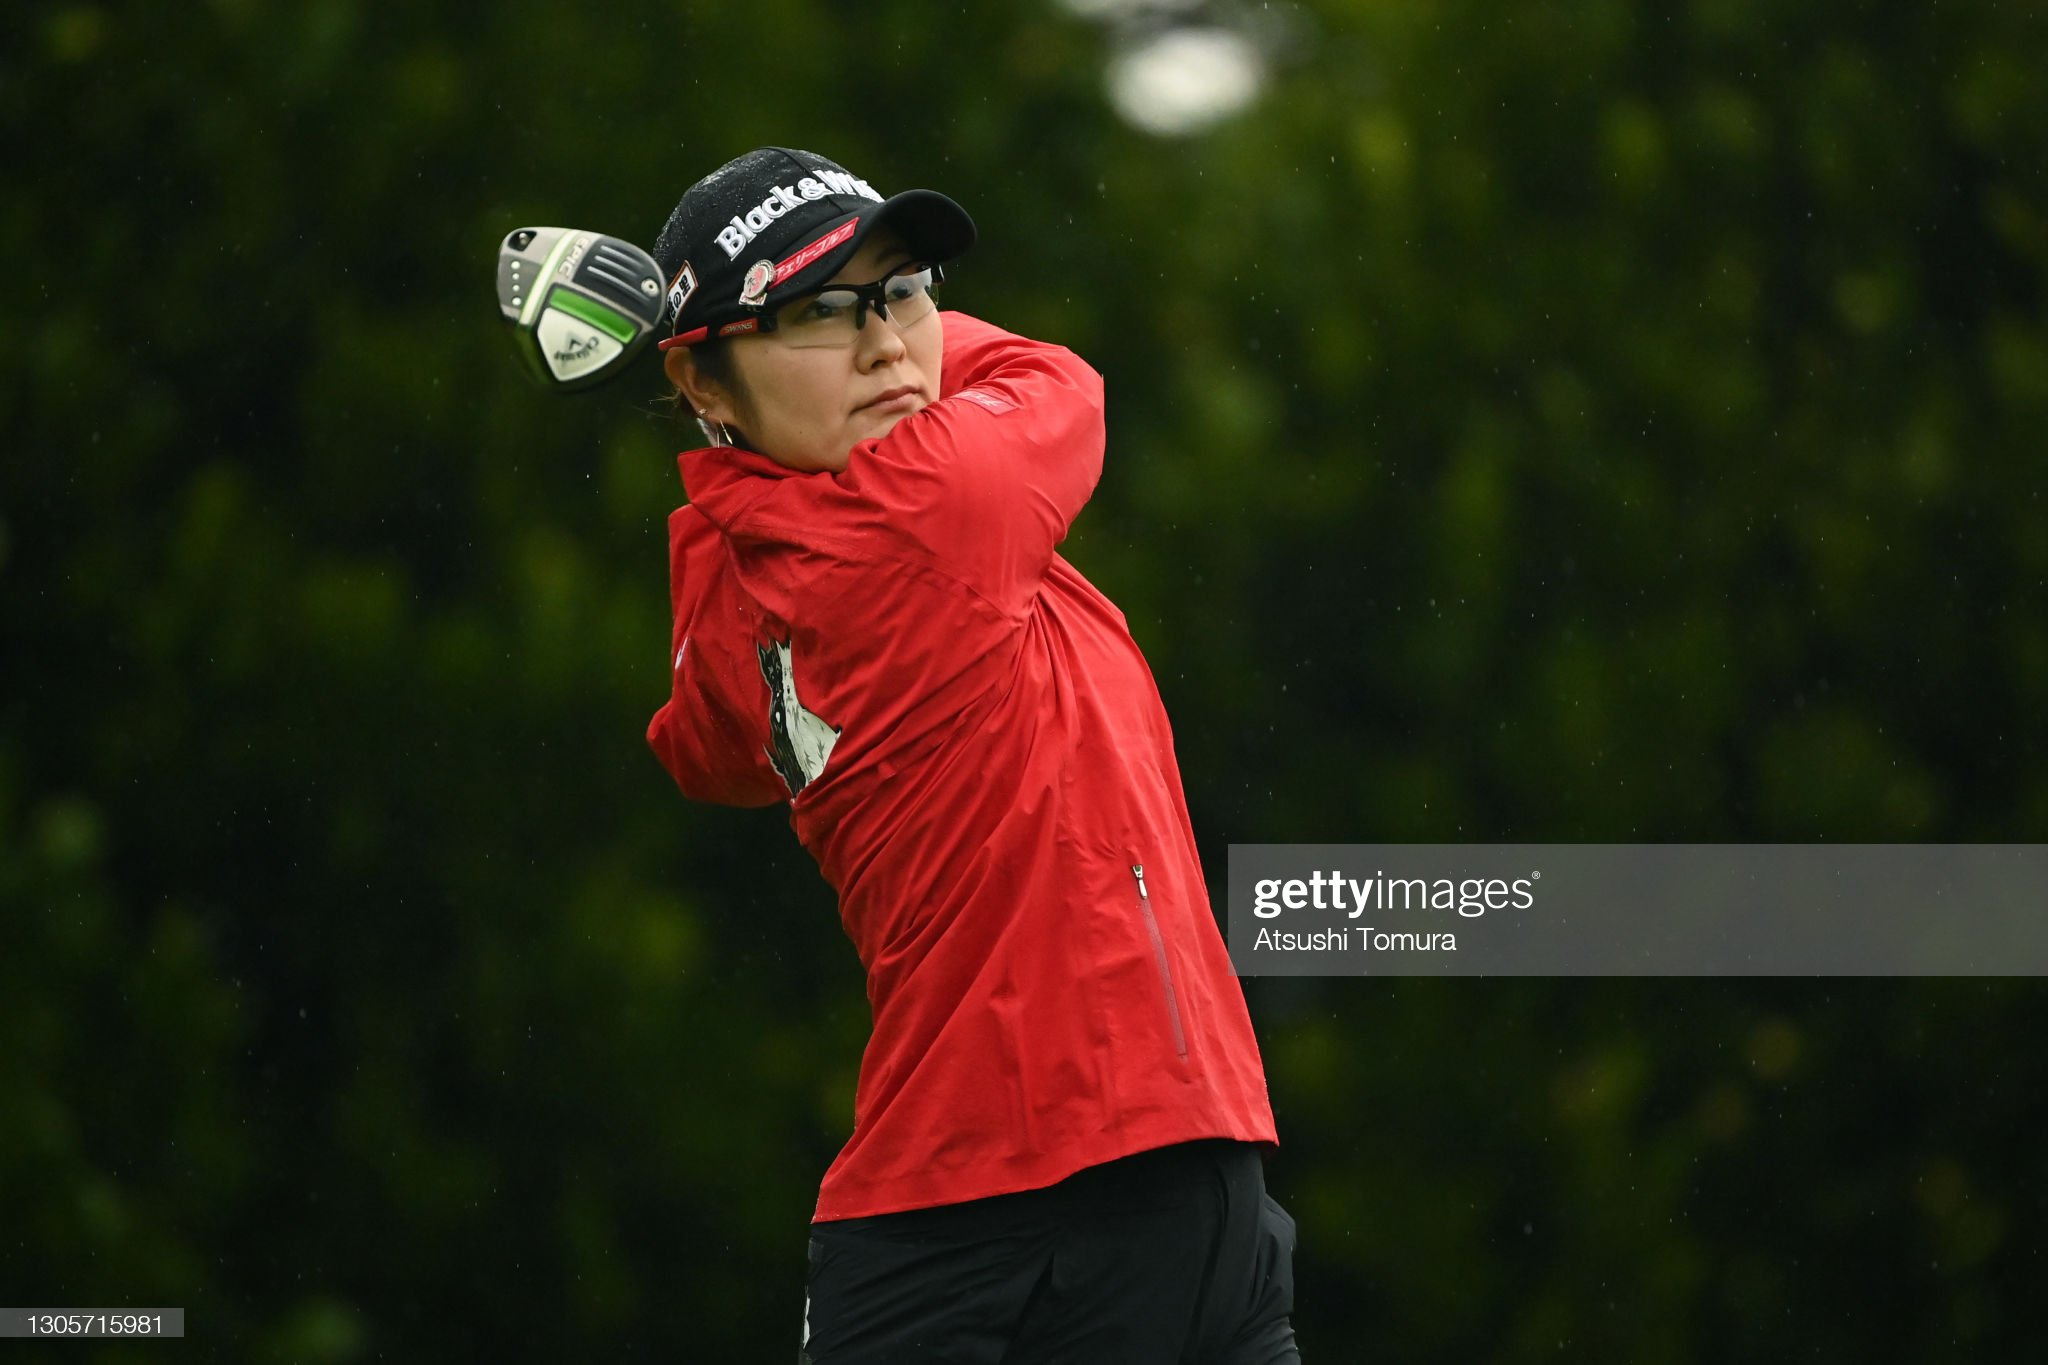 https://media.gettyimages.com/photos/saiki-fujita-of-japan-hits-her-tee-shot-on-the-11th-hole-during-the-picture-id1305715981?s=2048x2048